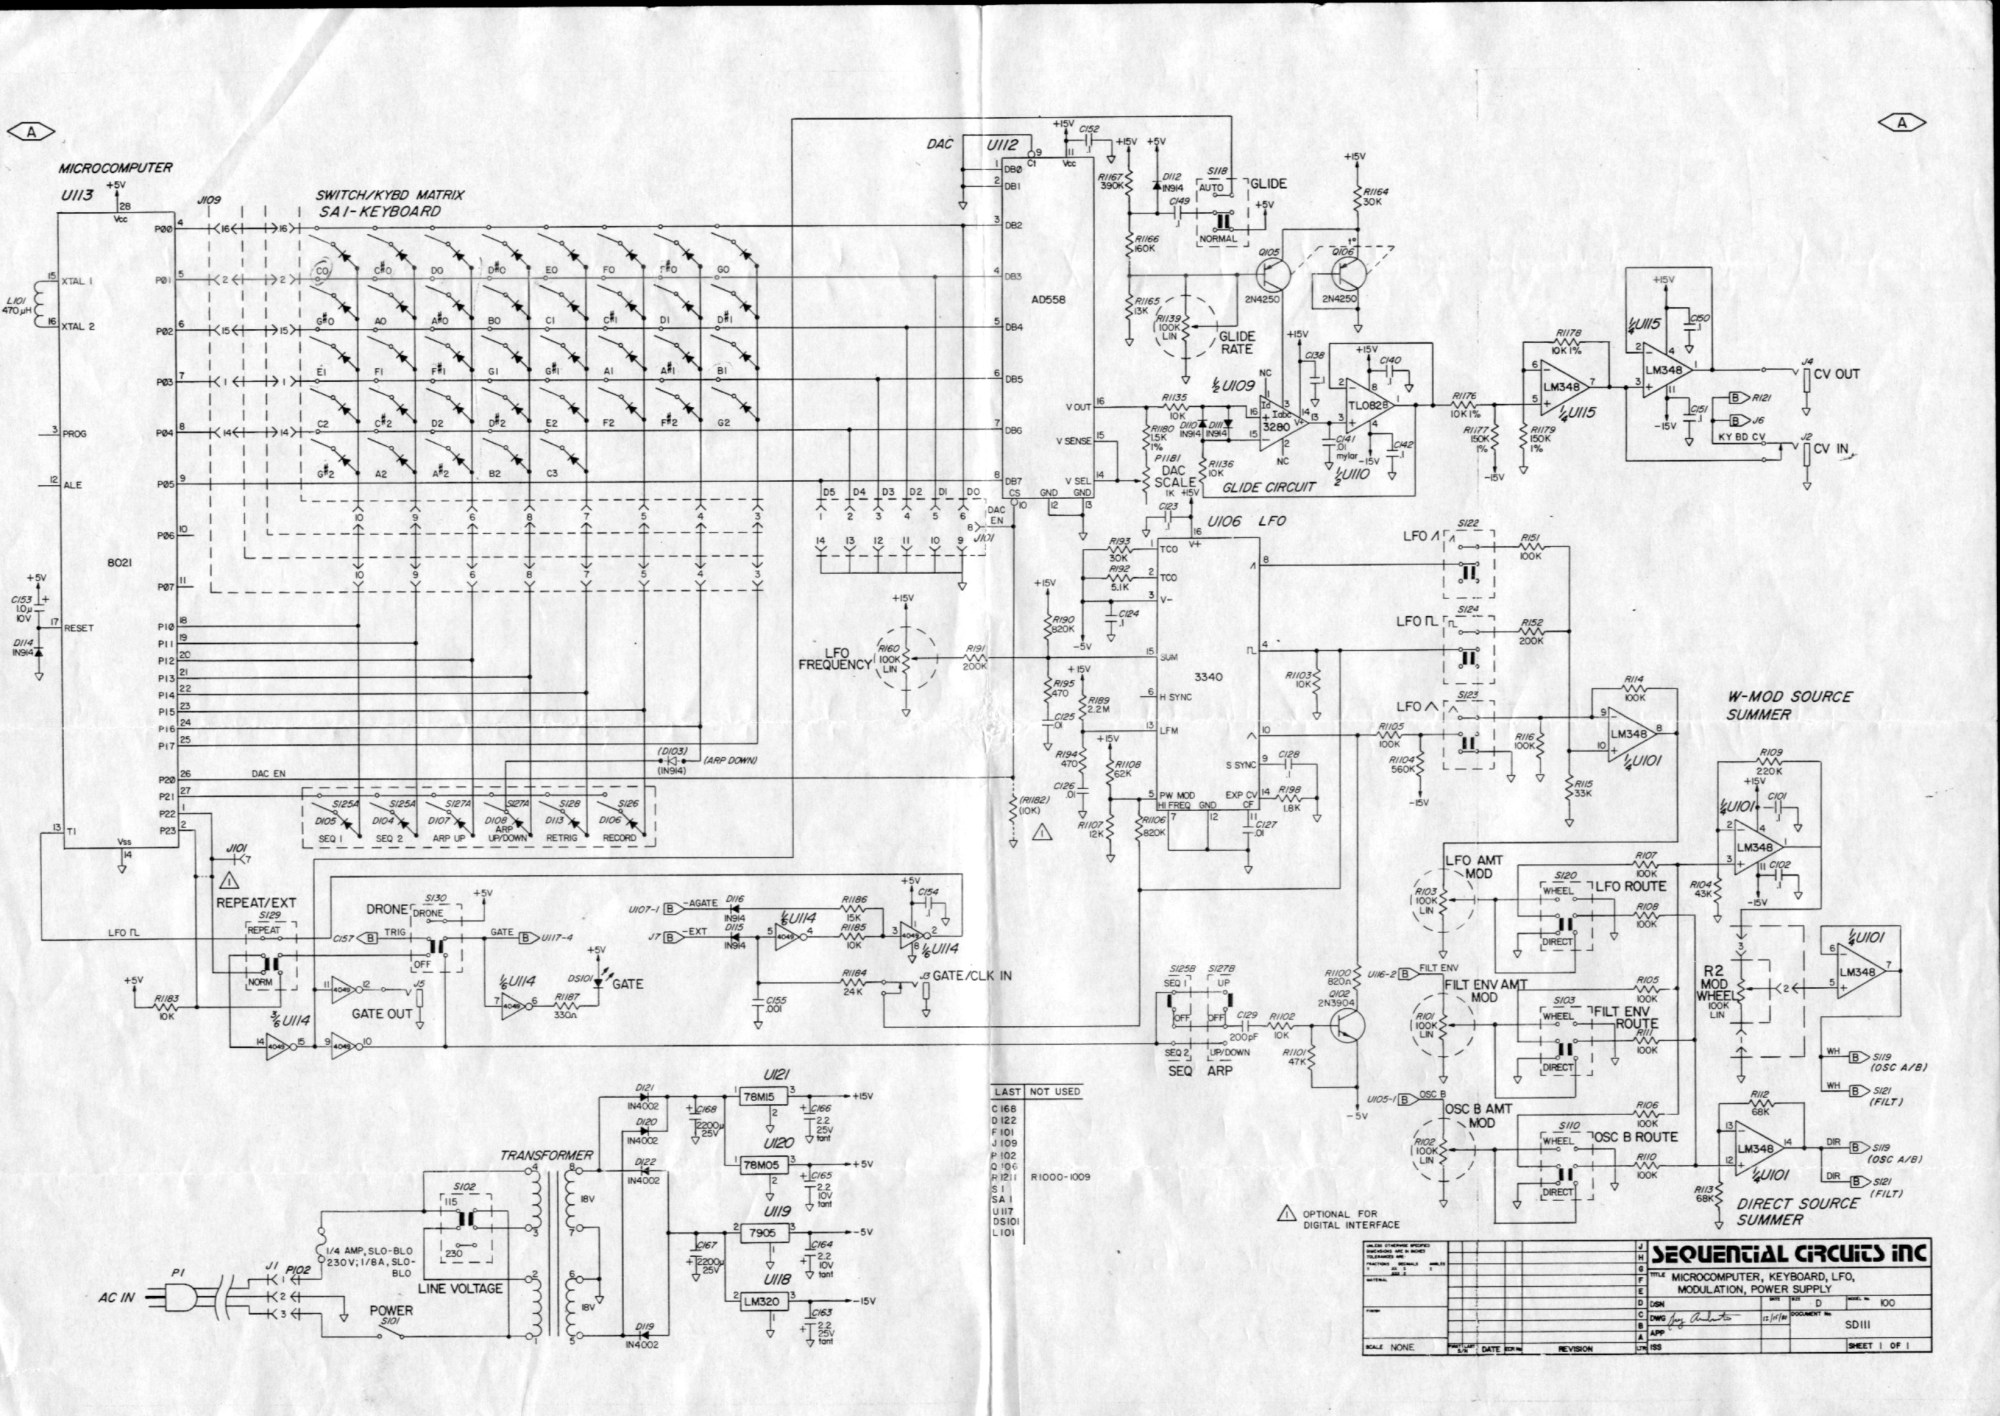 hight resolution of circuits pro one schematic 1 of 2 jpeg